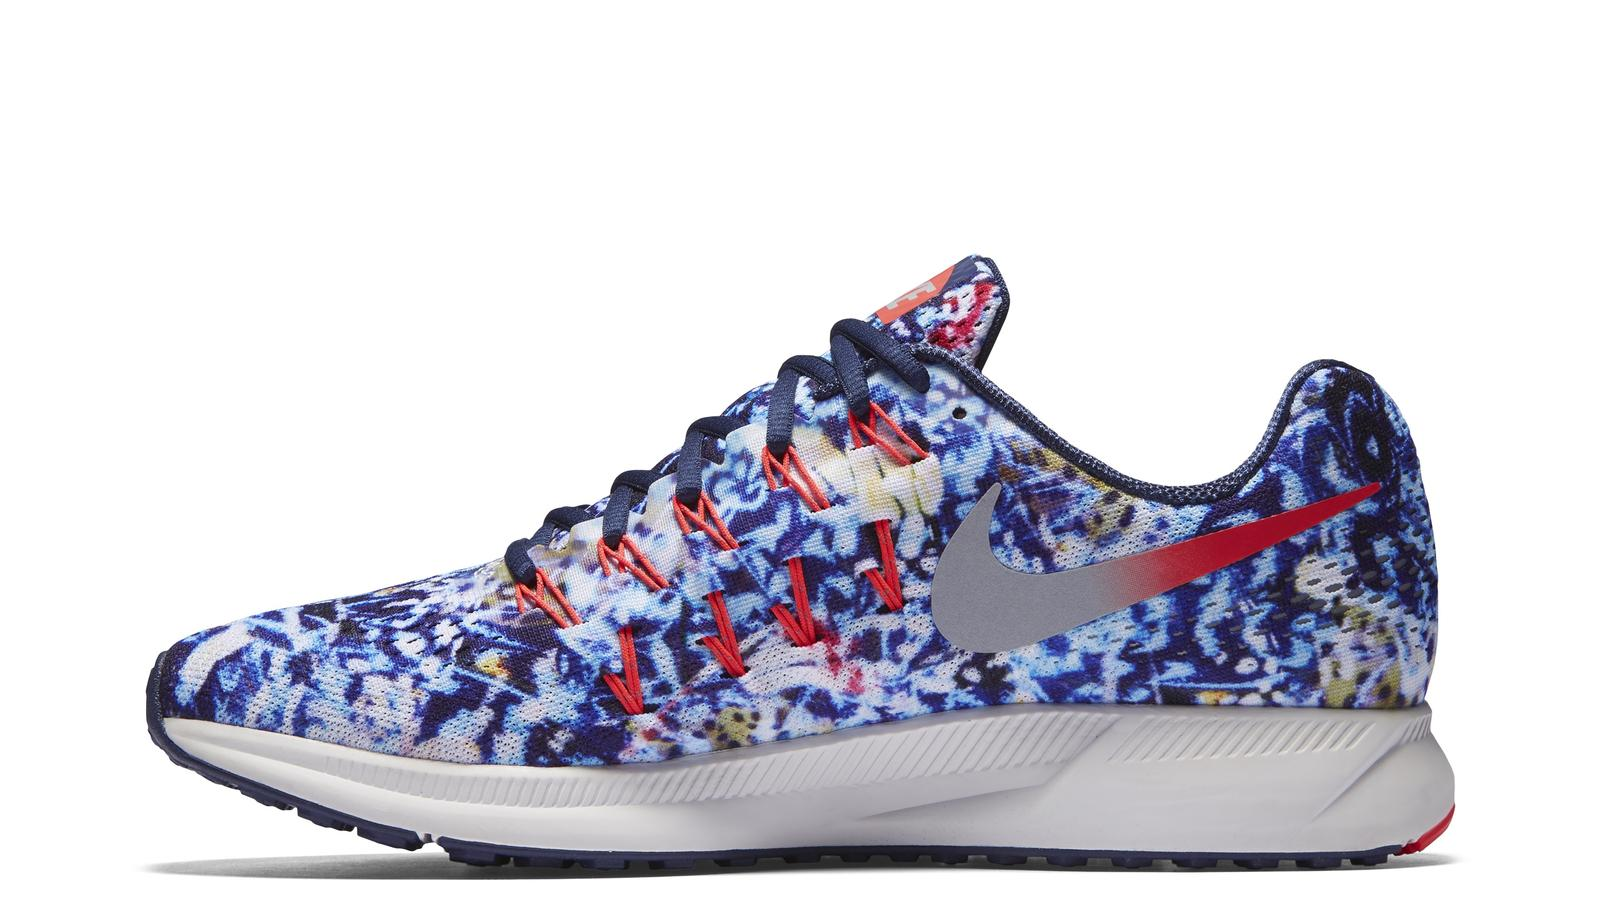 check out 43e55 9f2ee Nike Running Jungle Pack. NIKE PEGASUS 33 MEDIAL